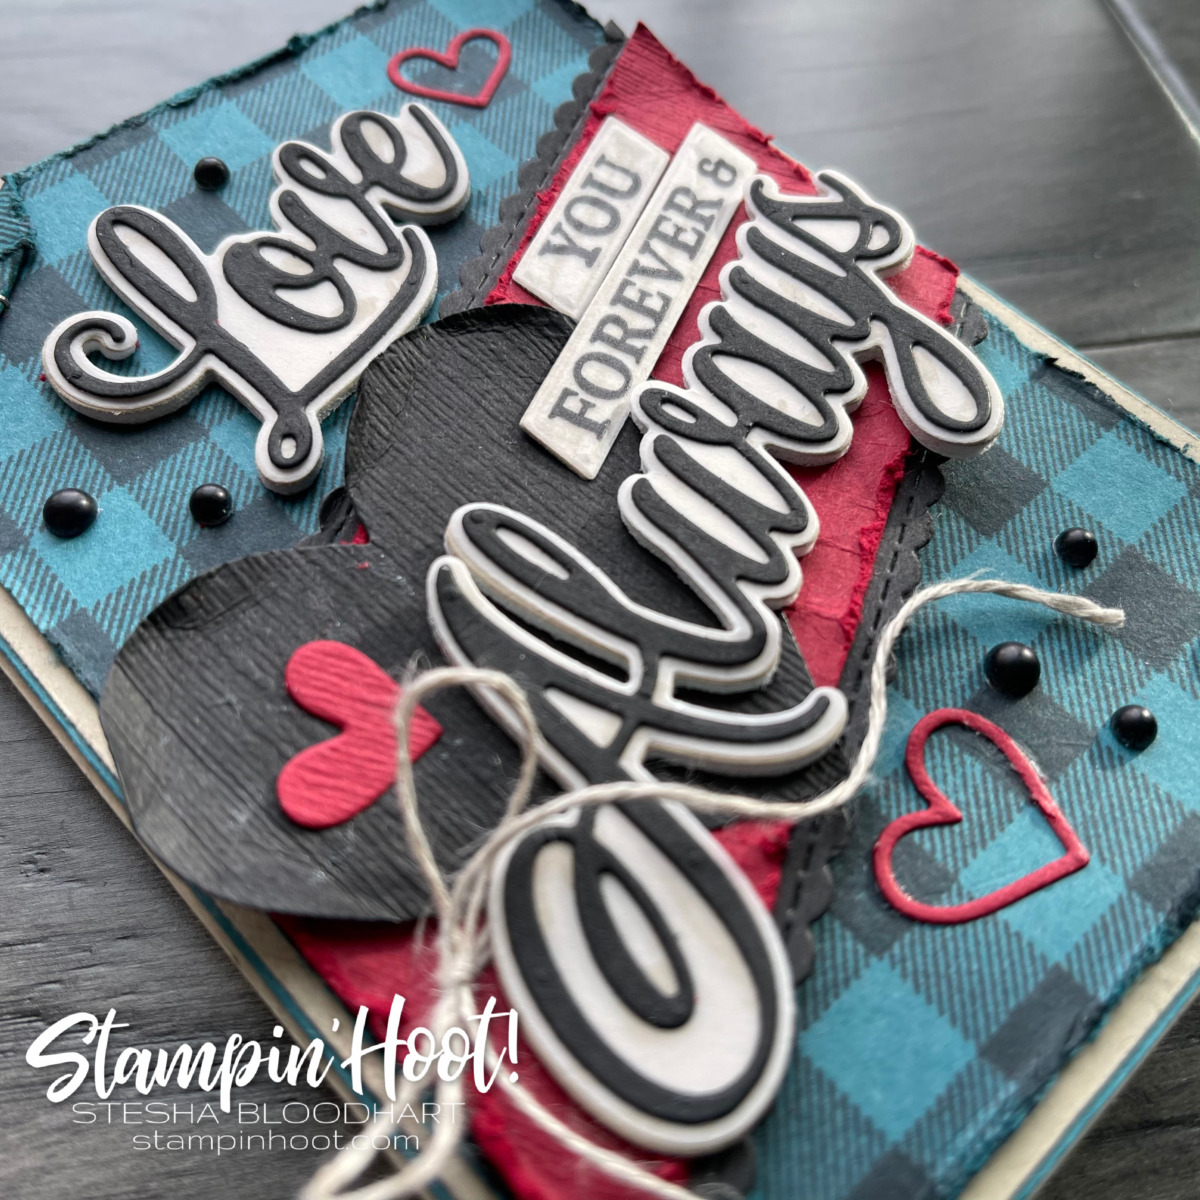 Forever & Always Bundle by Stampin' Up! #madforplaid #tgifc301 Designer Takeover Stesha Bloodhart, Stampin' Hoot!